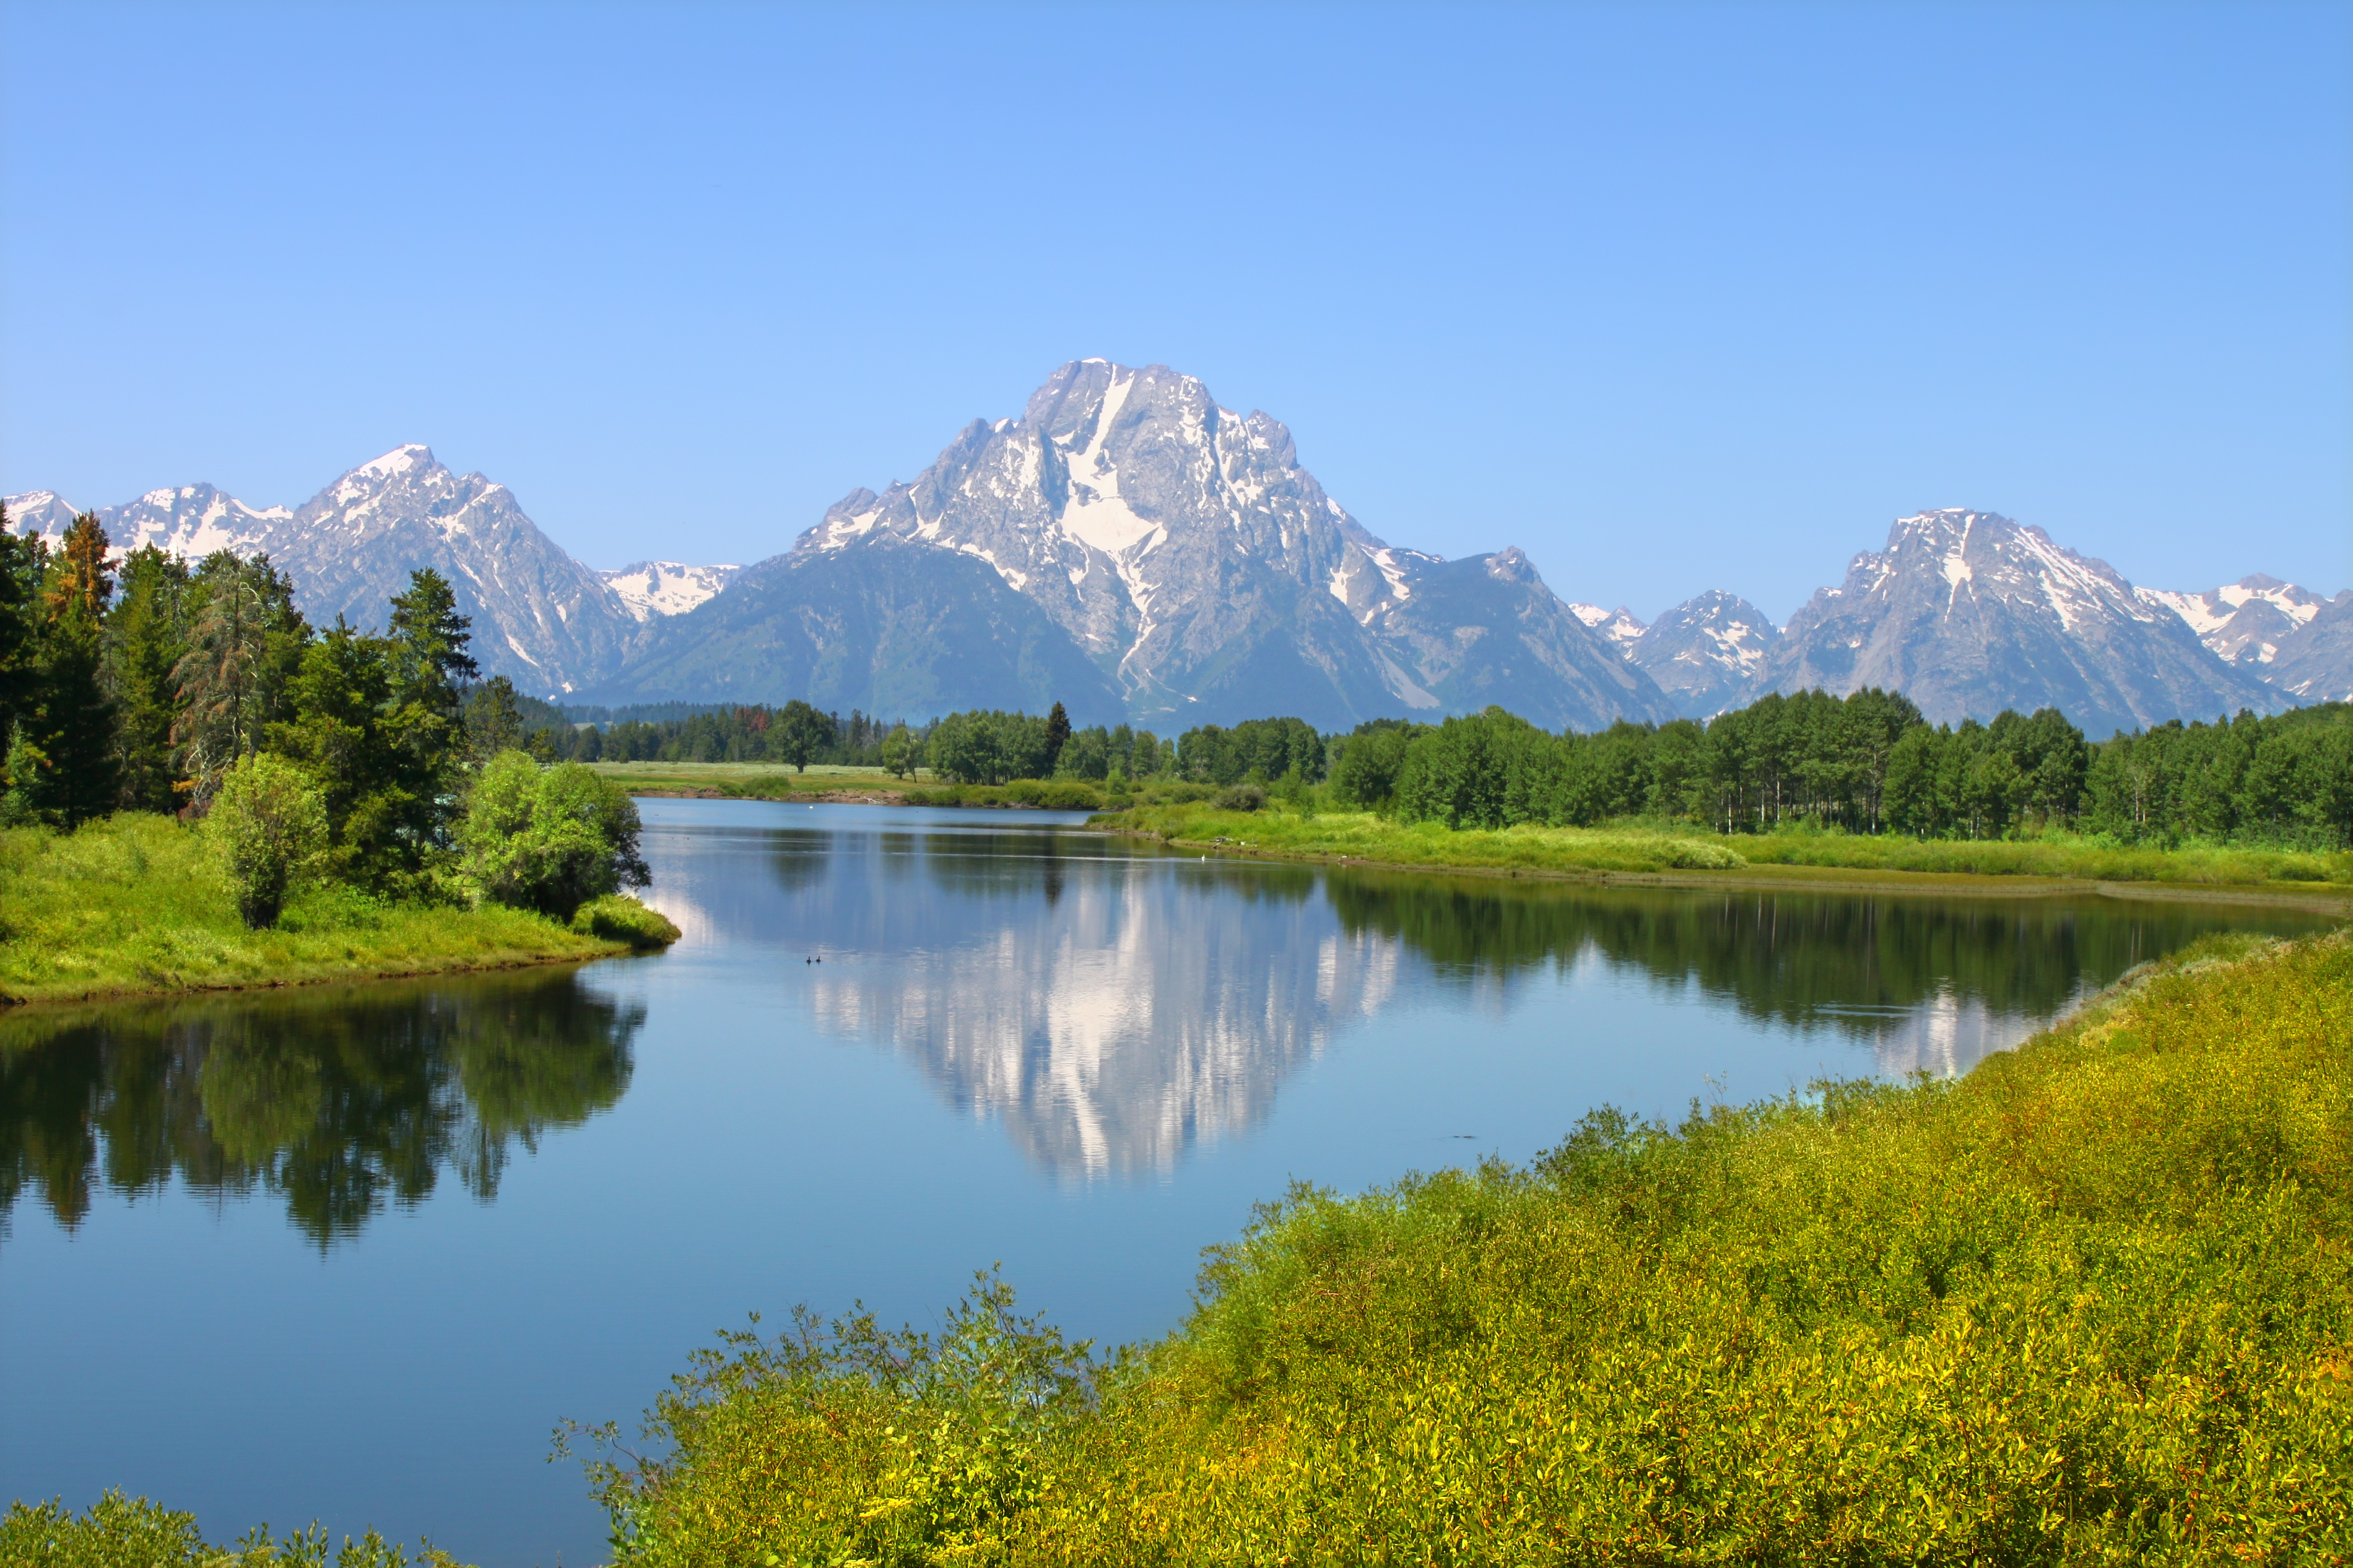 bigstock-Snake-River-And-Grand-Tetons-29872160